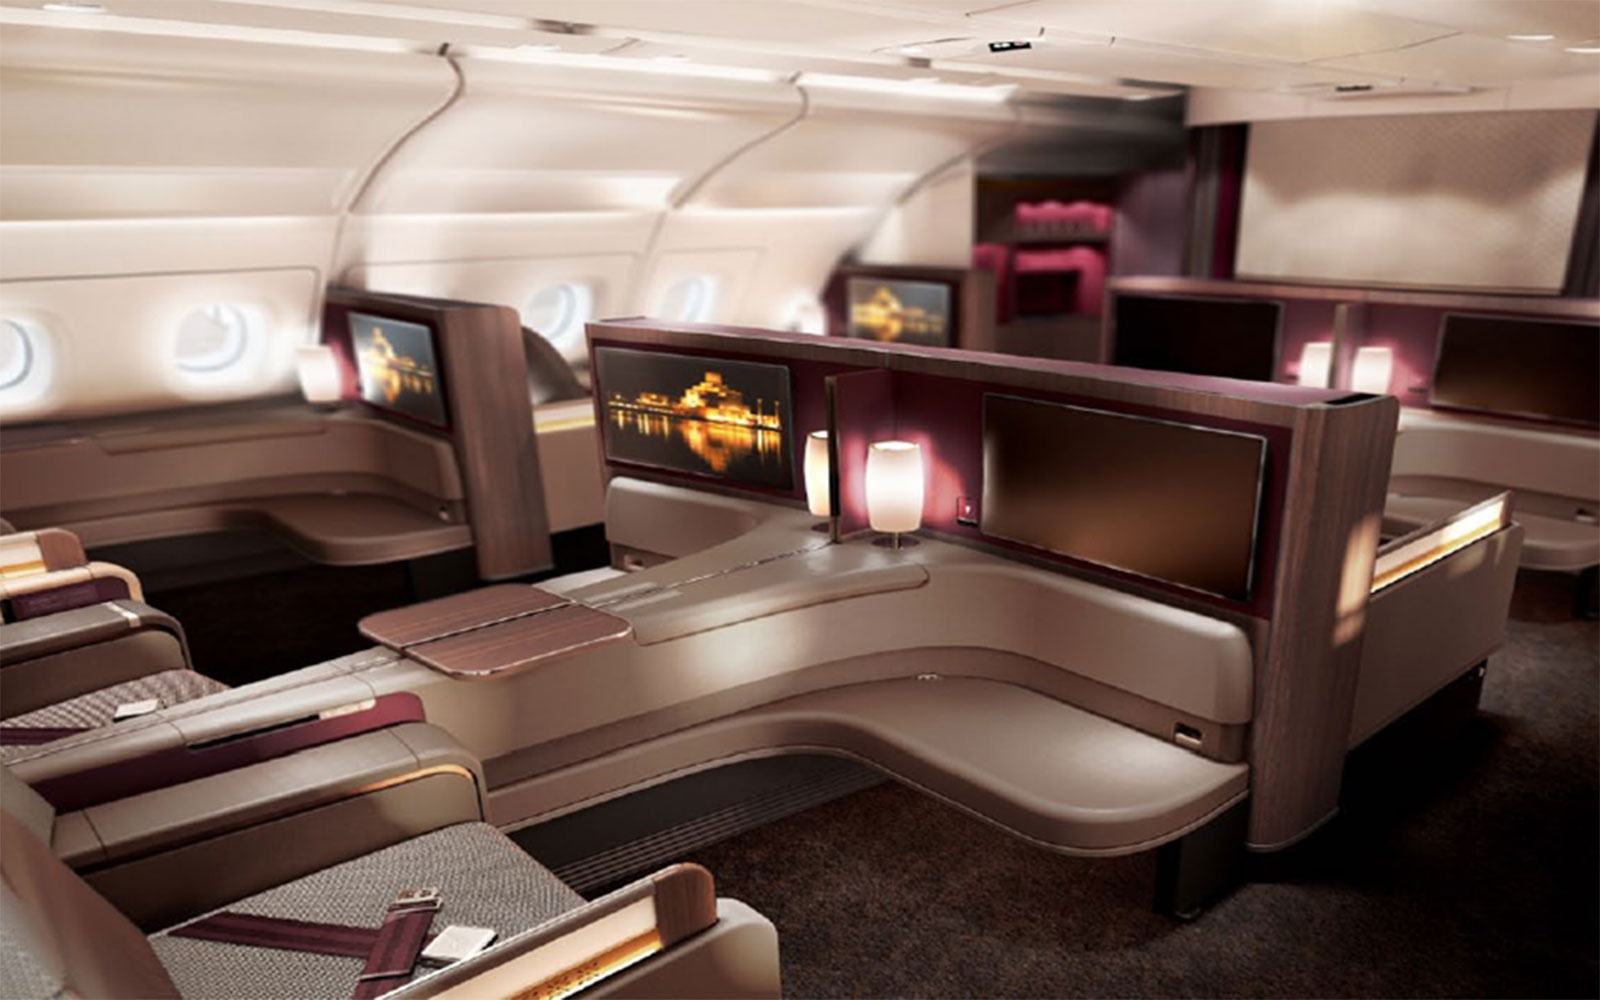 No. 3 International: Qatar Airways